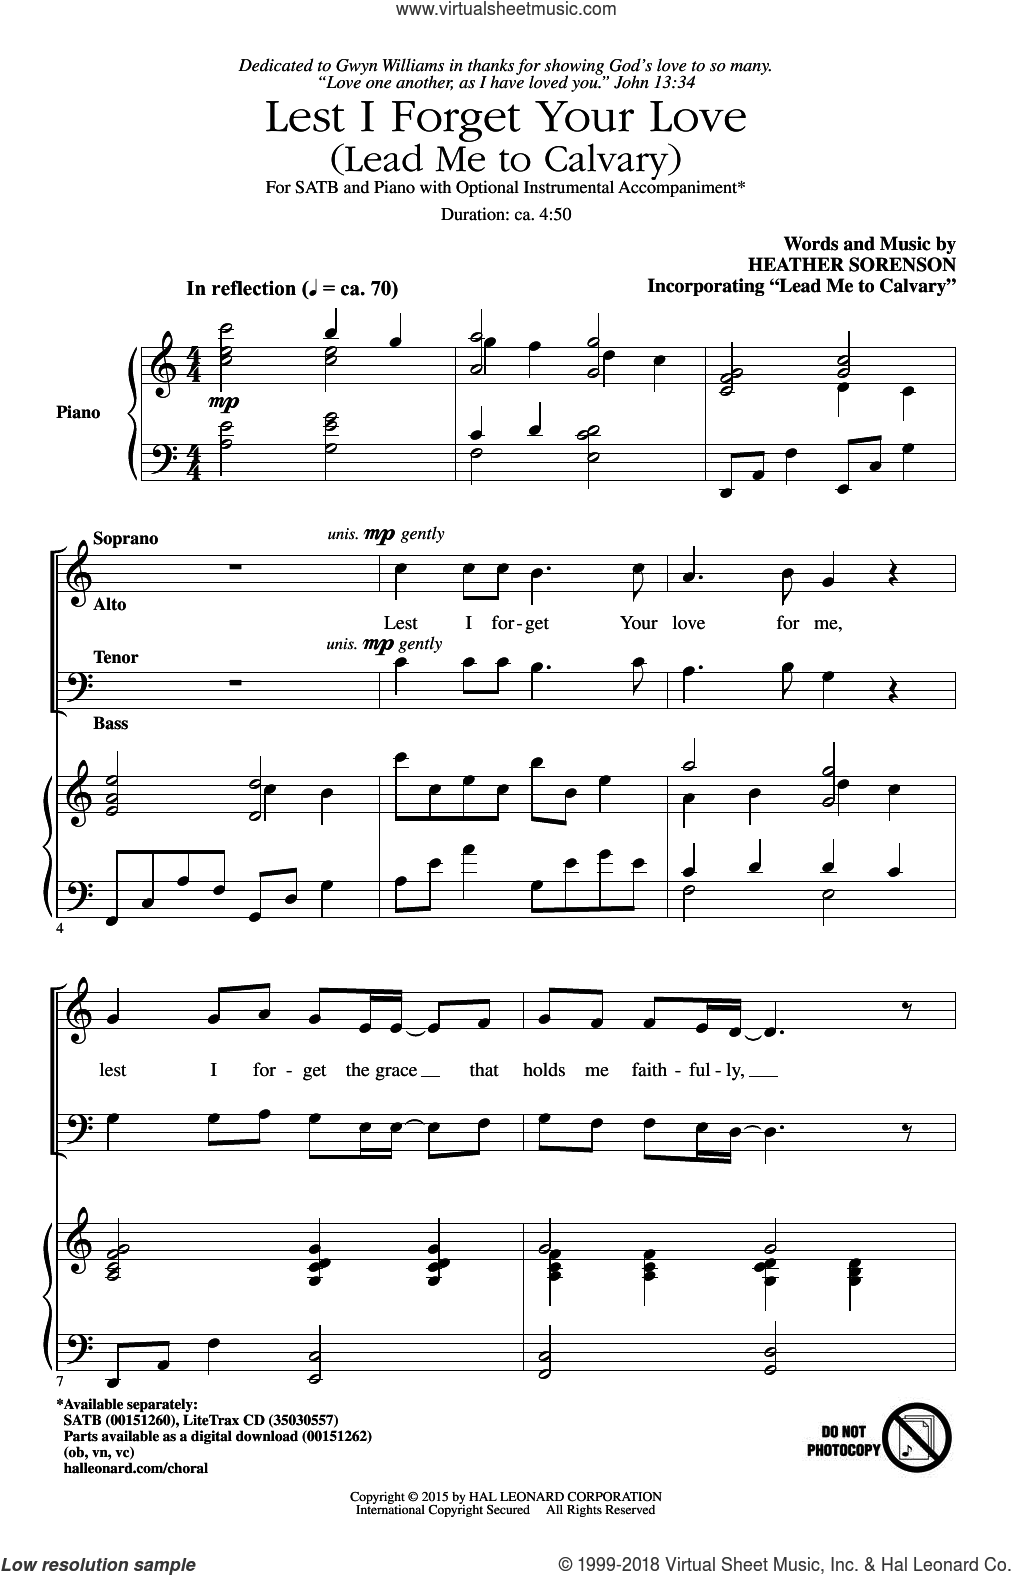 Lest I Forget Your Love (Lead Me To Calvary) sheet music for choir (SATB) by Heather Sorenson. Score Image Preview.